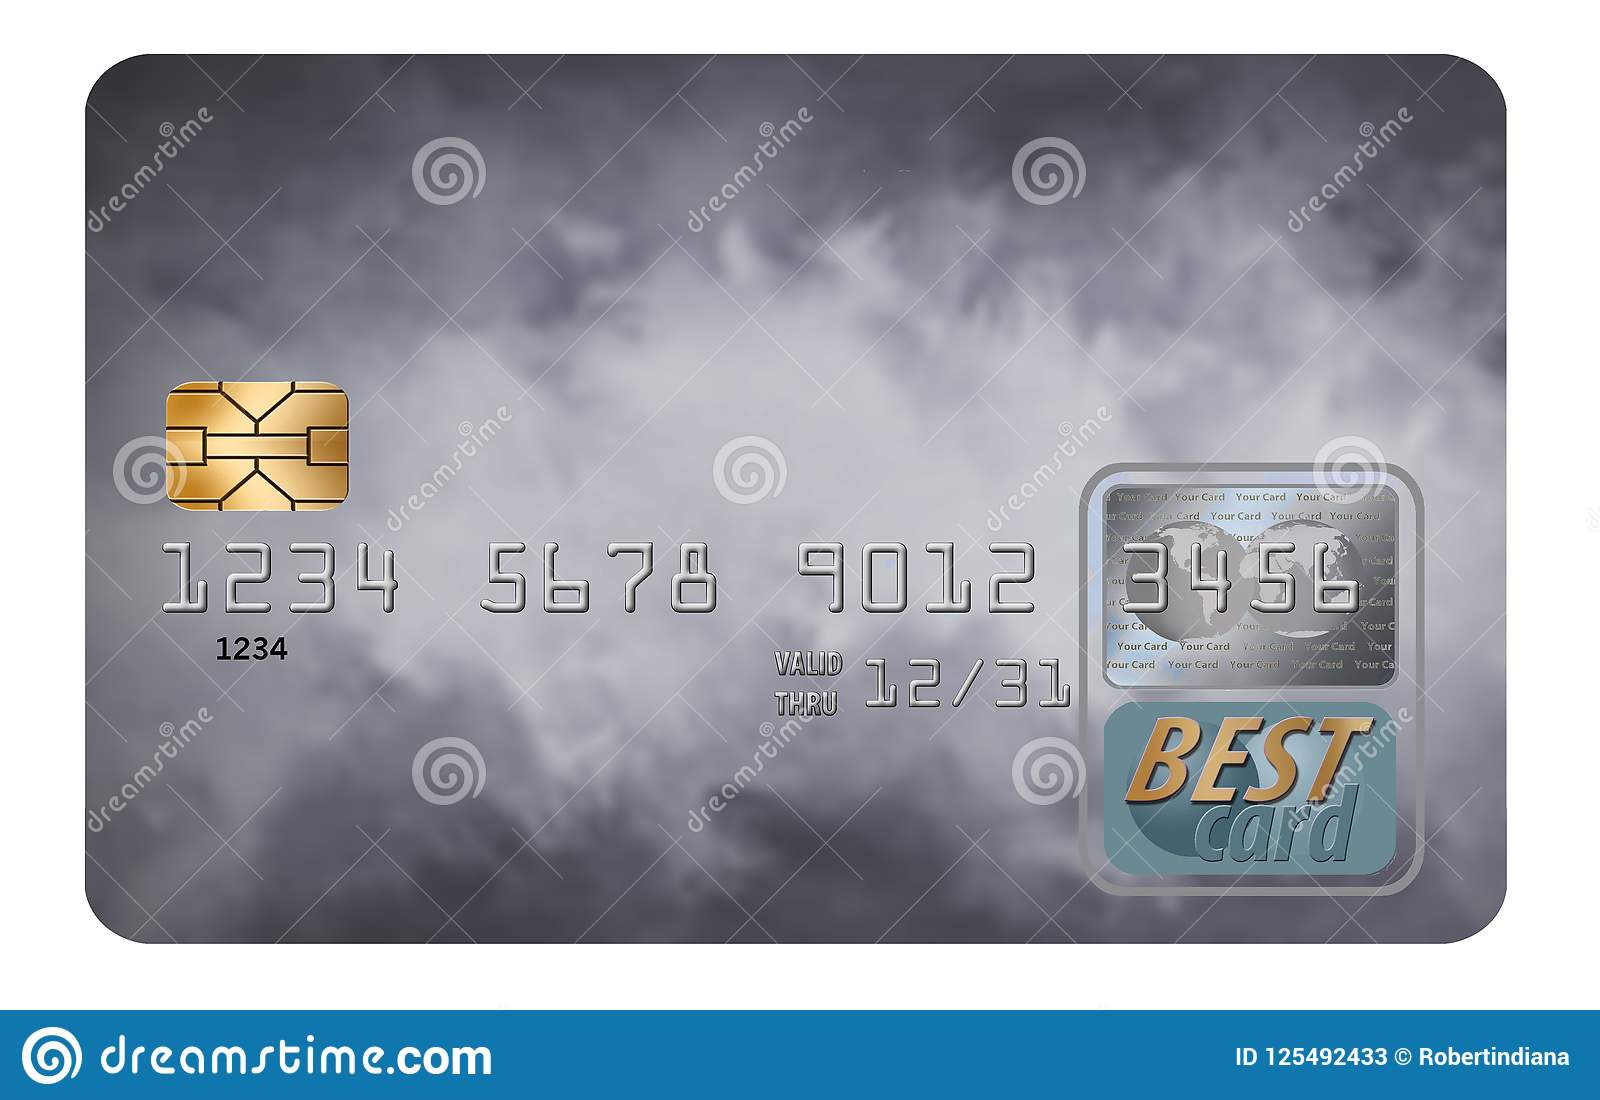 Here is a generic credit card isolated on a white background.